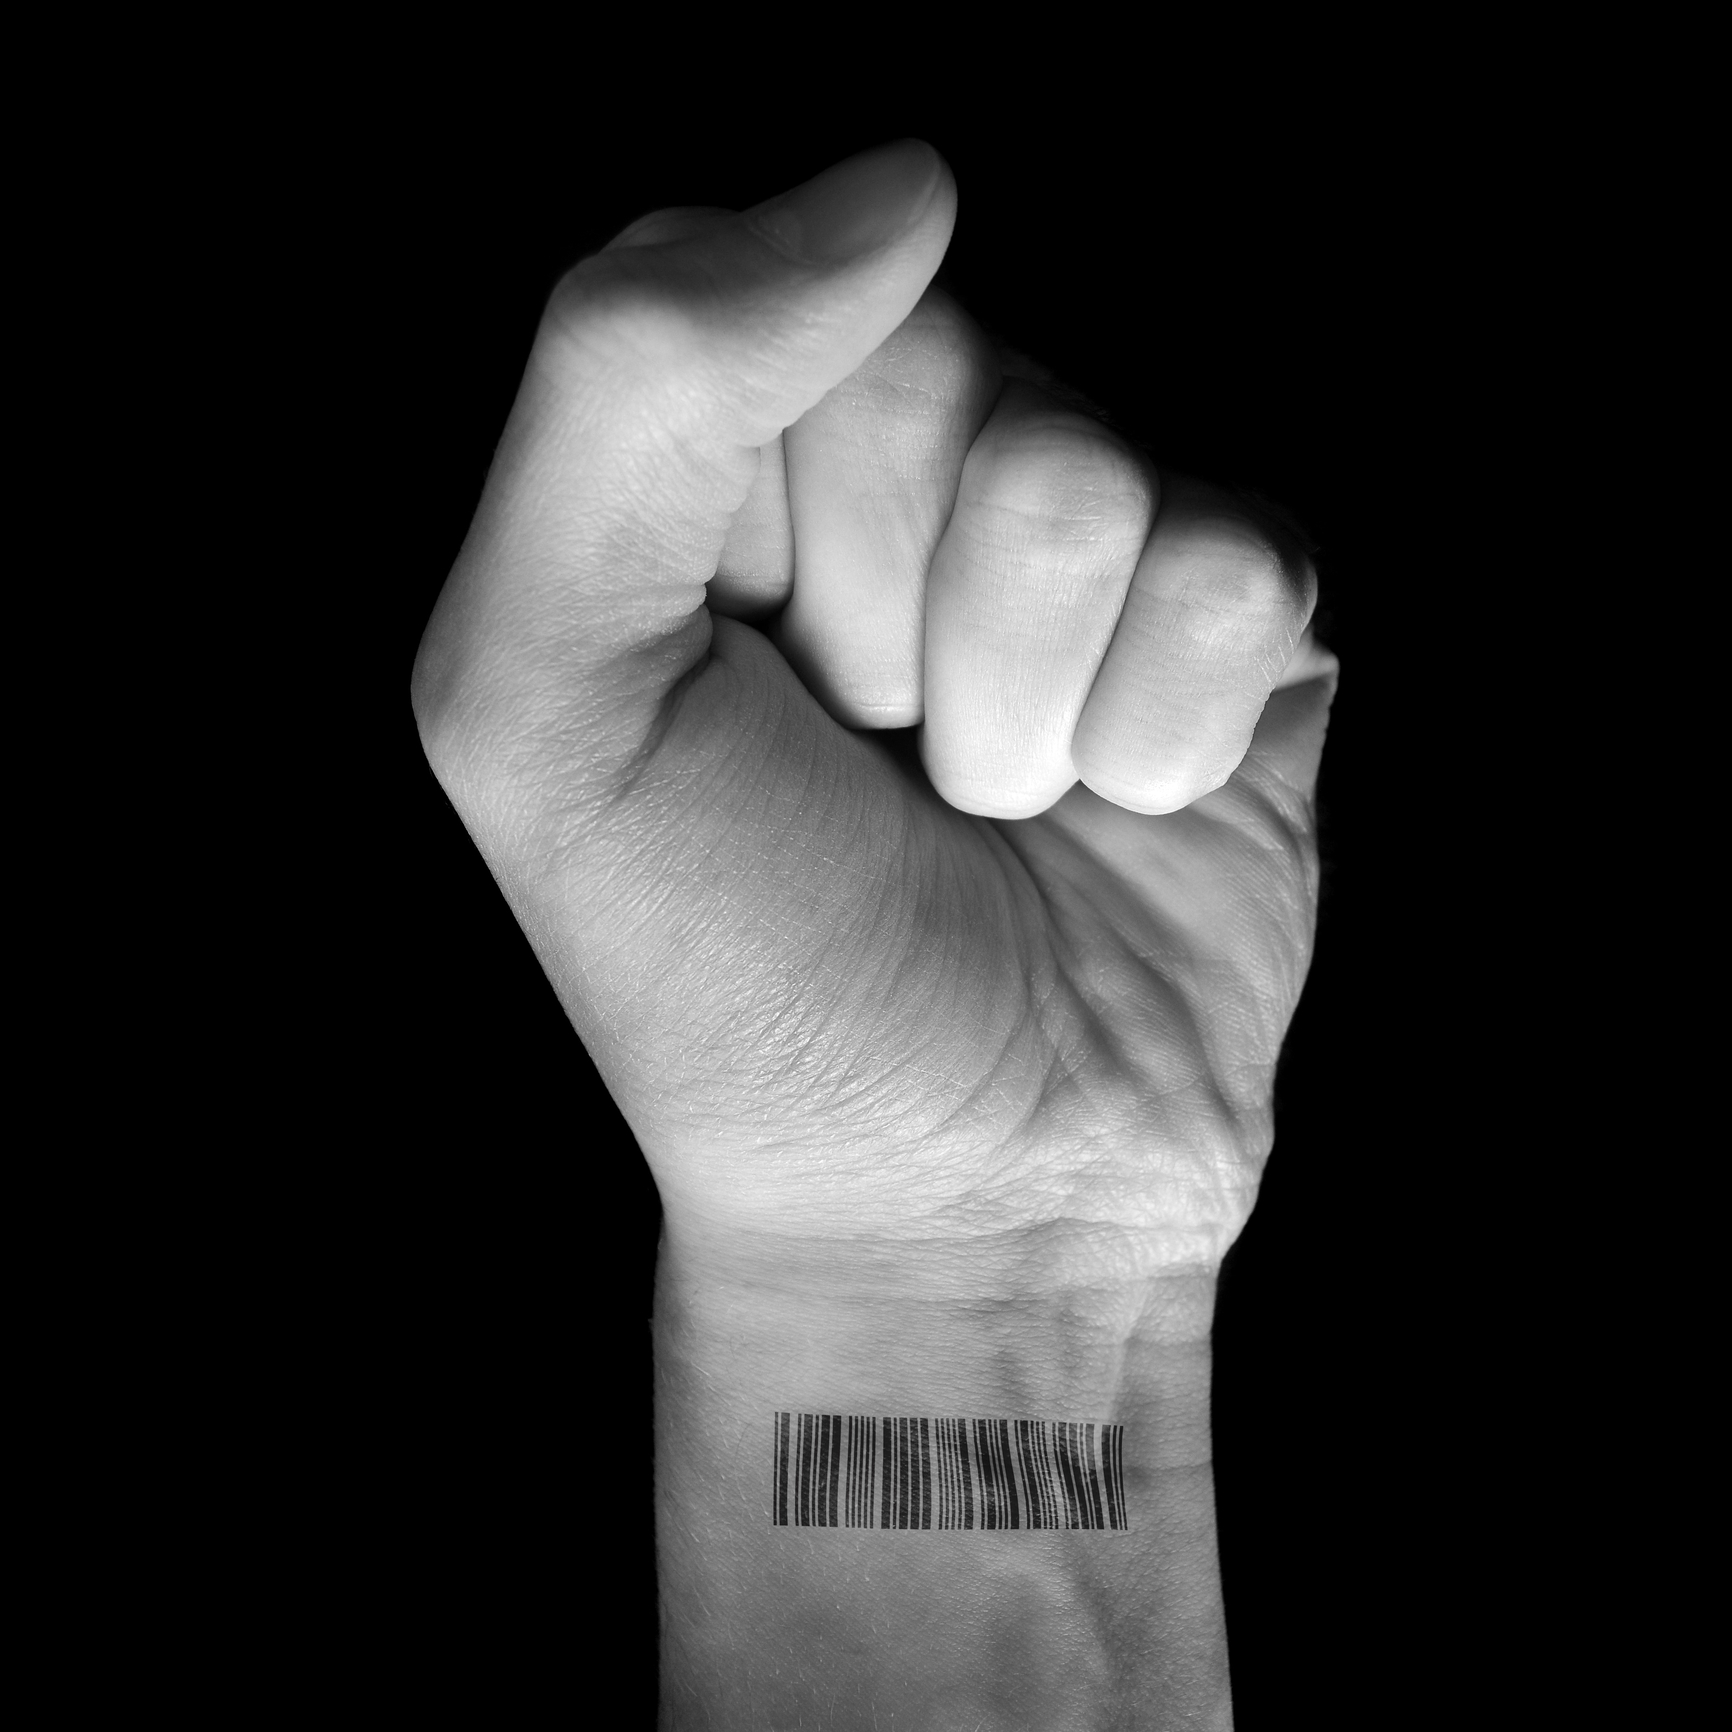 27 Barcode Tattoo Images, Pictures And Ideas